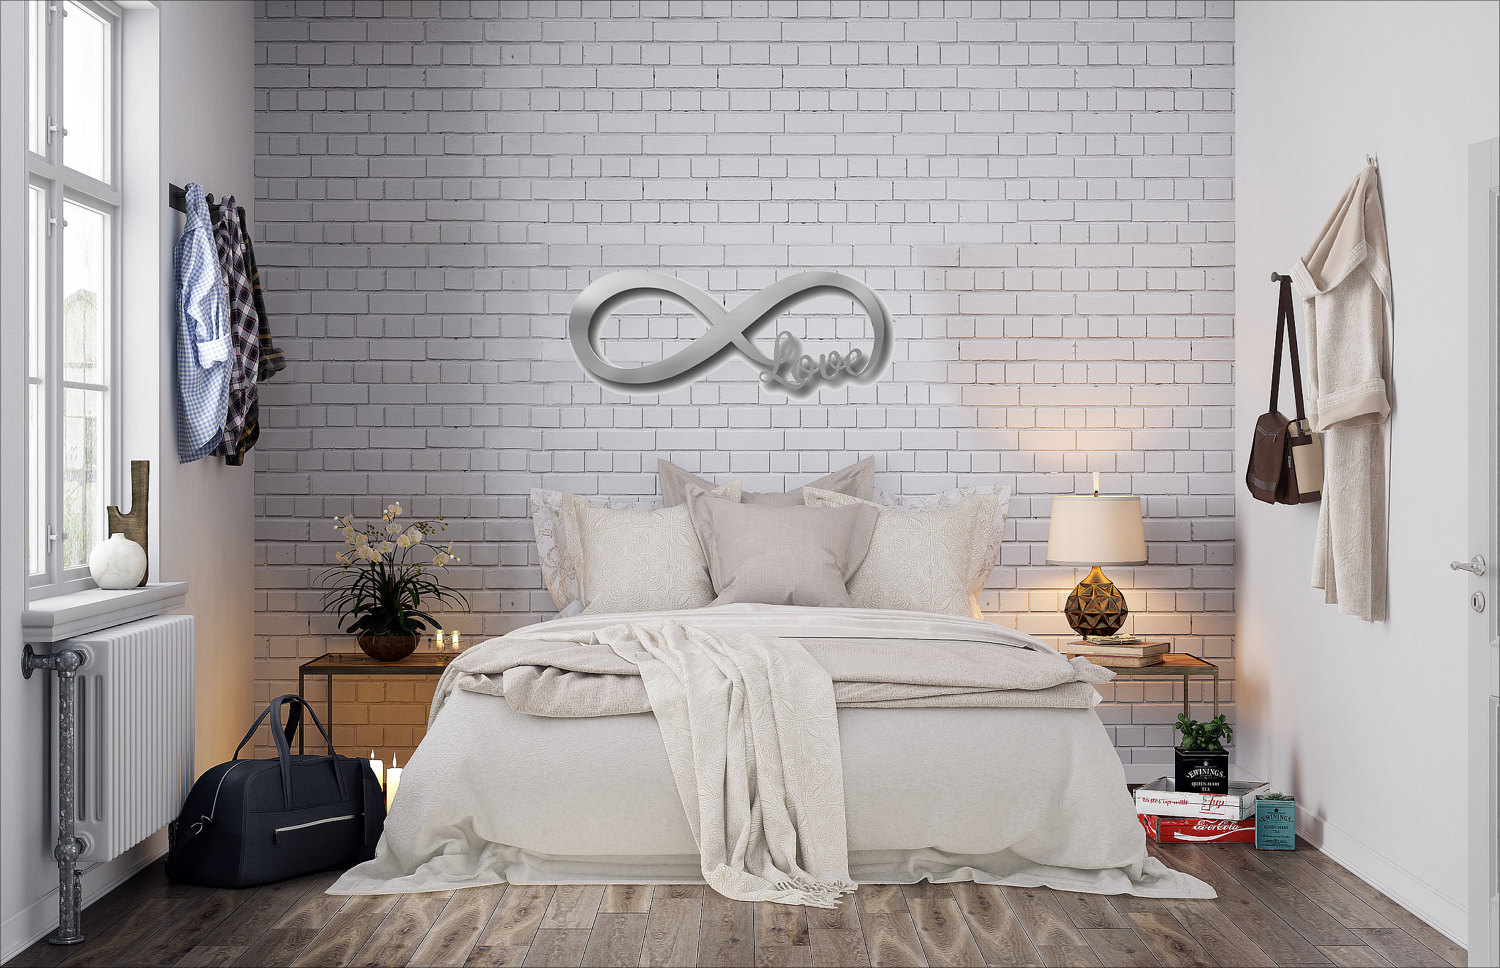 Picture of: Easy Large Letters For Wall Decor